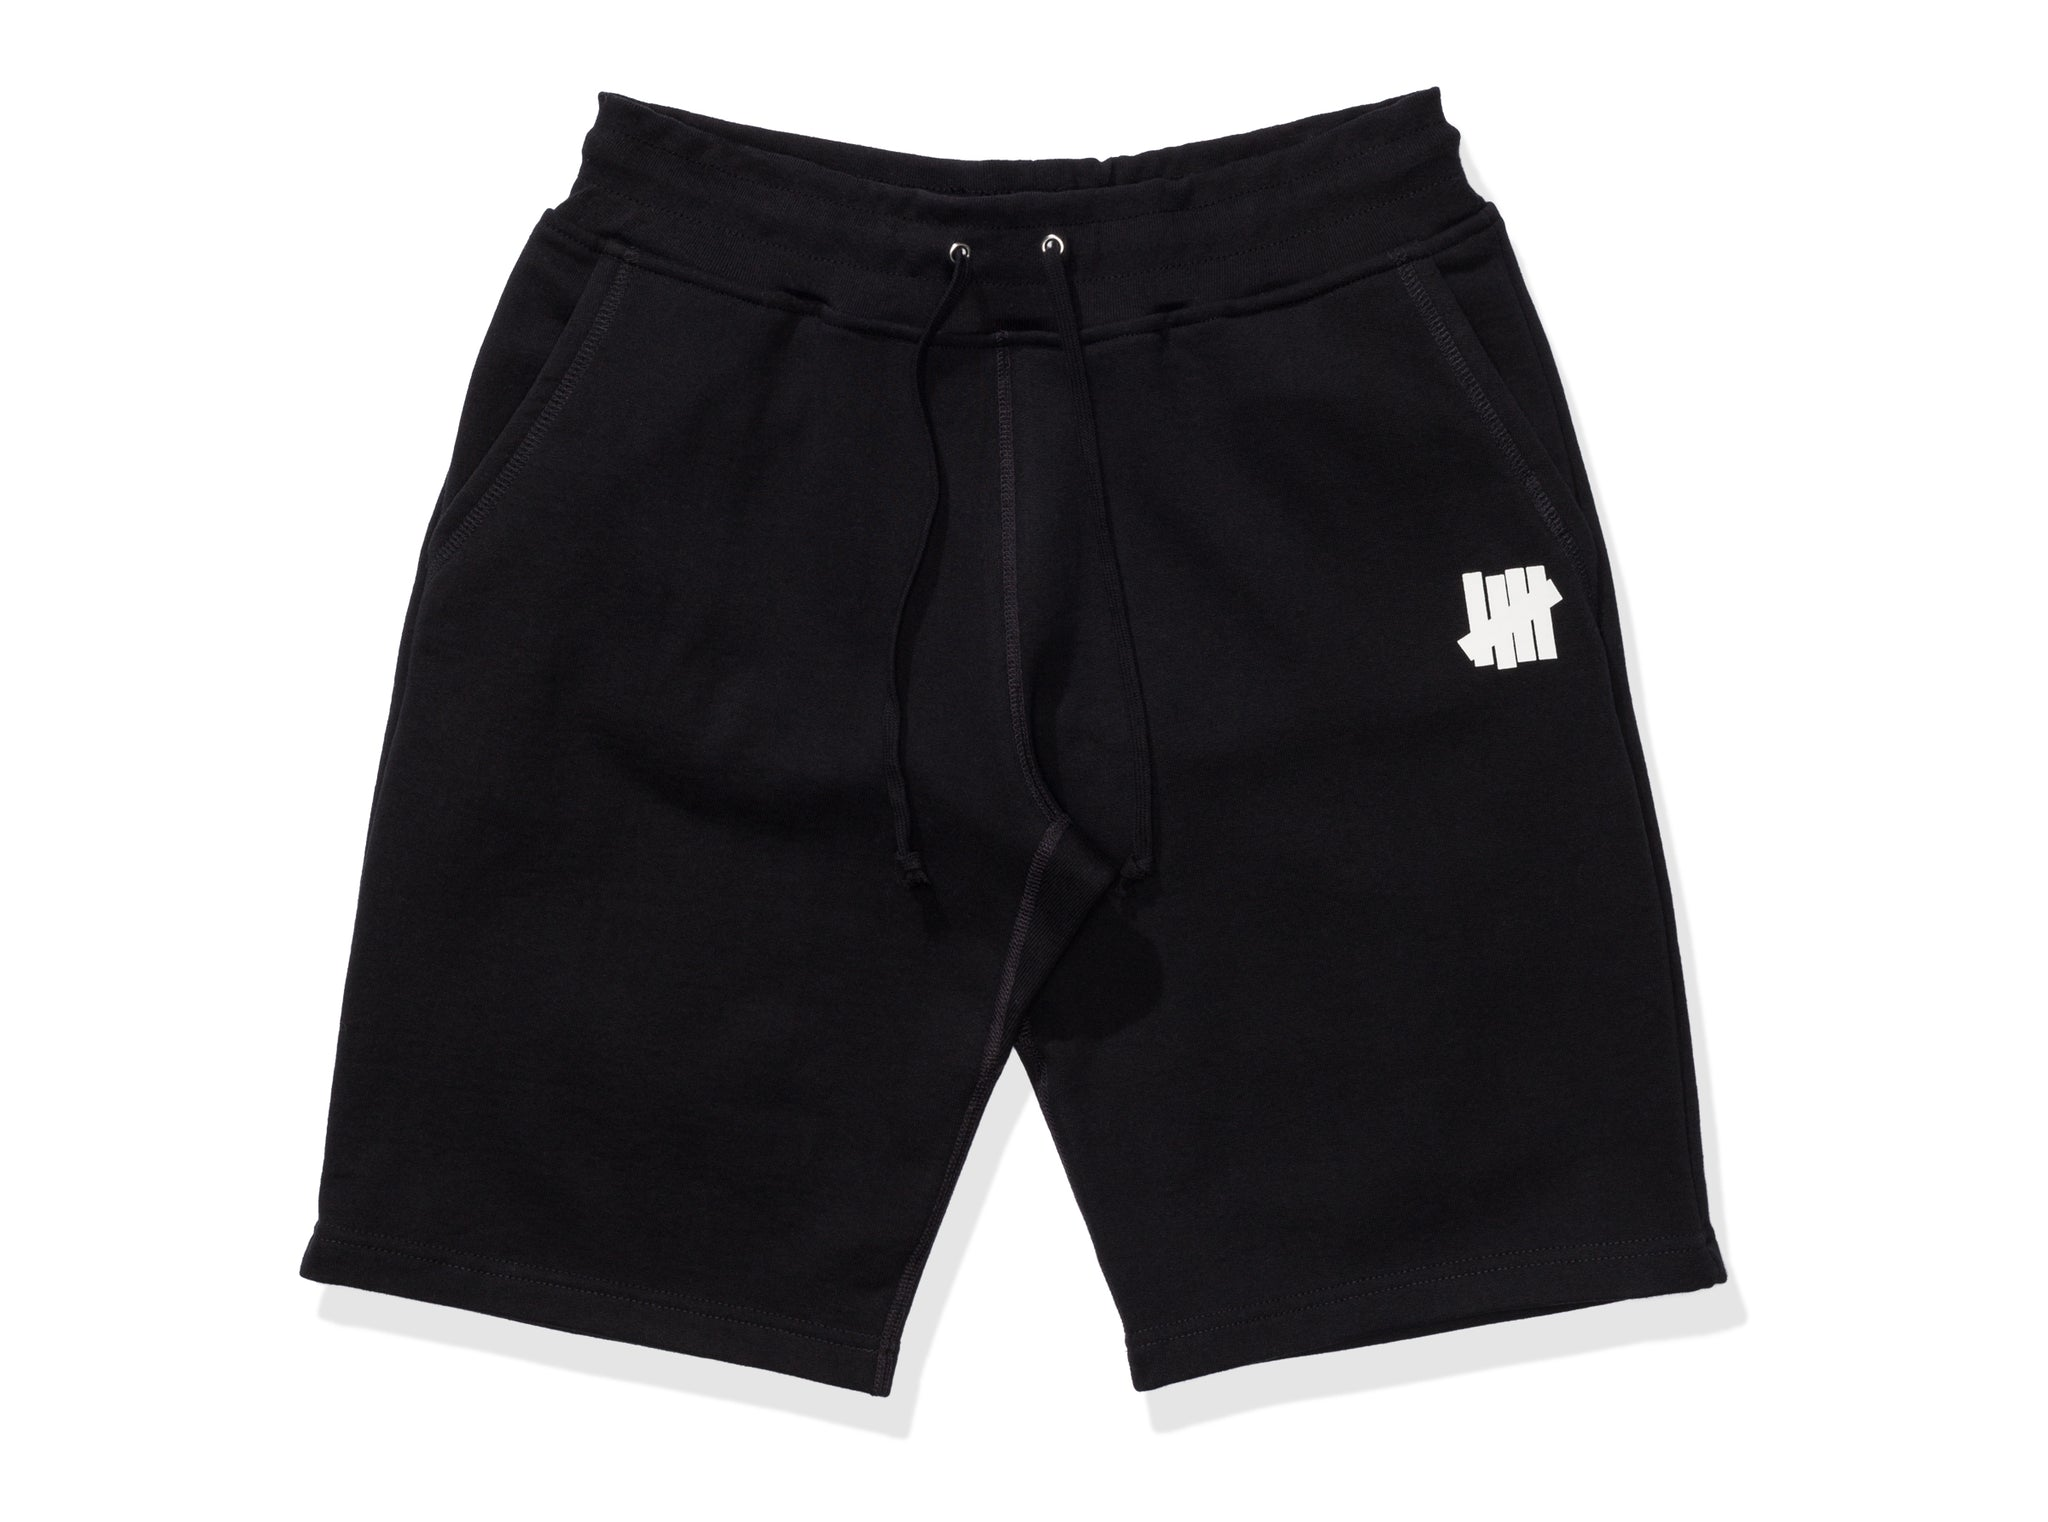 UNDEFEATED ICON SWEATSHORT